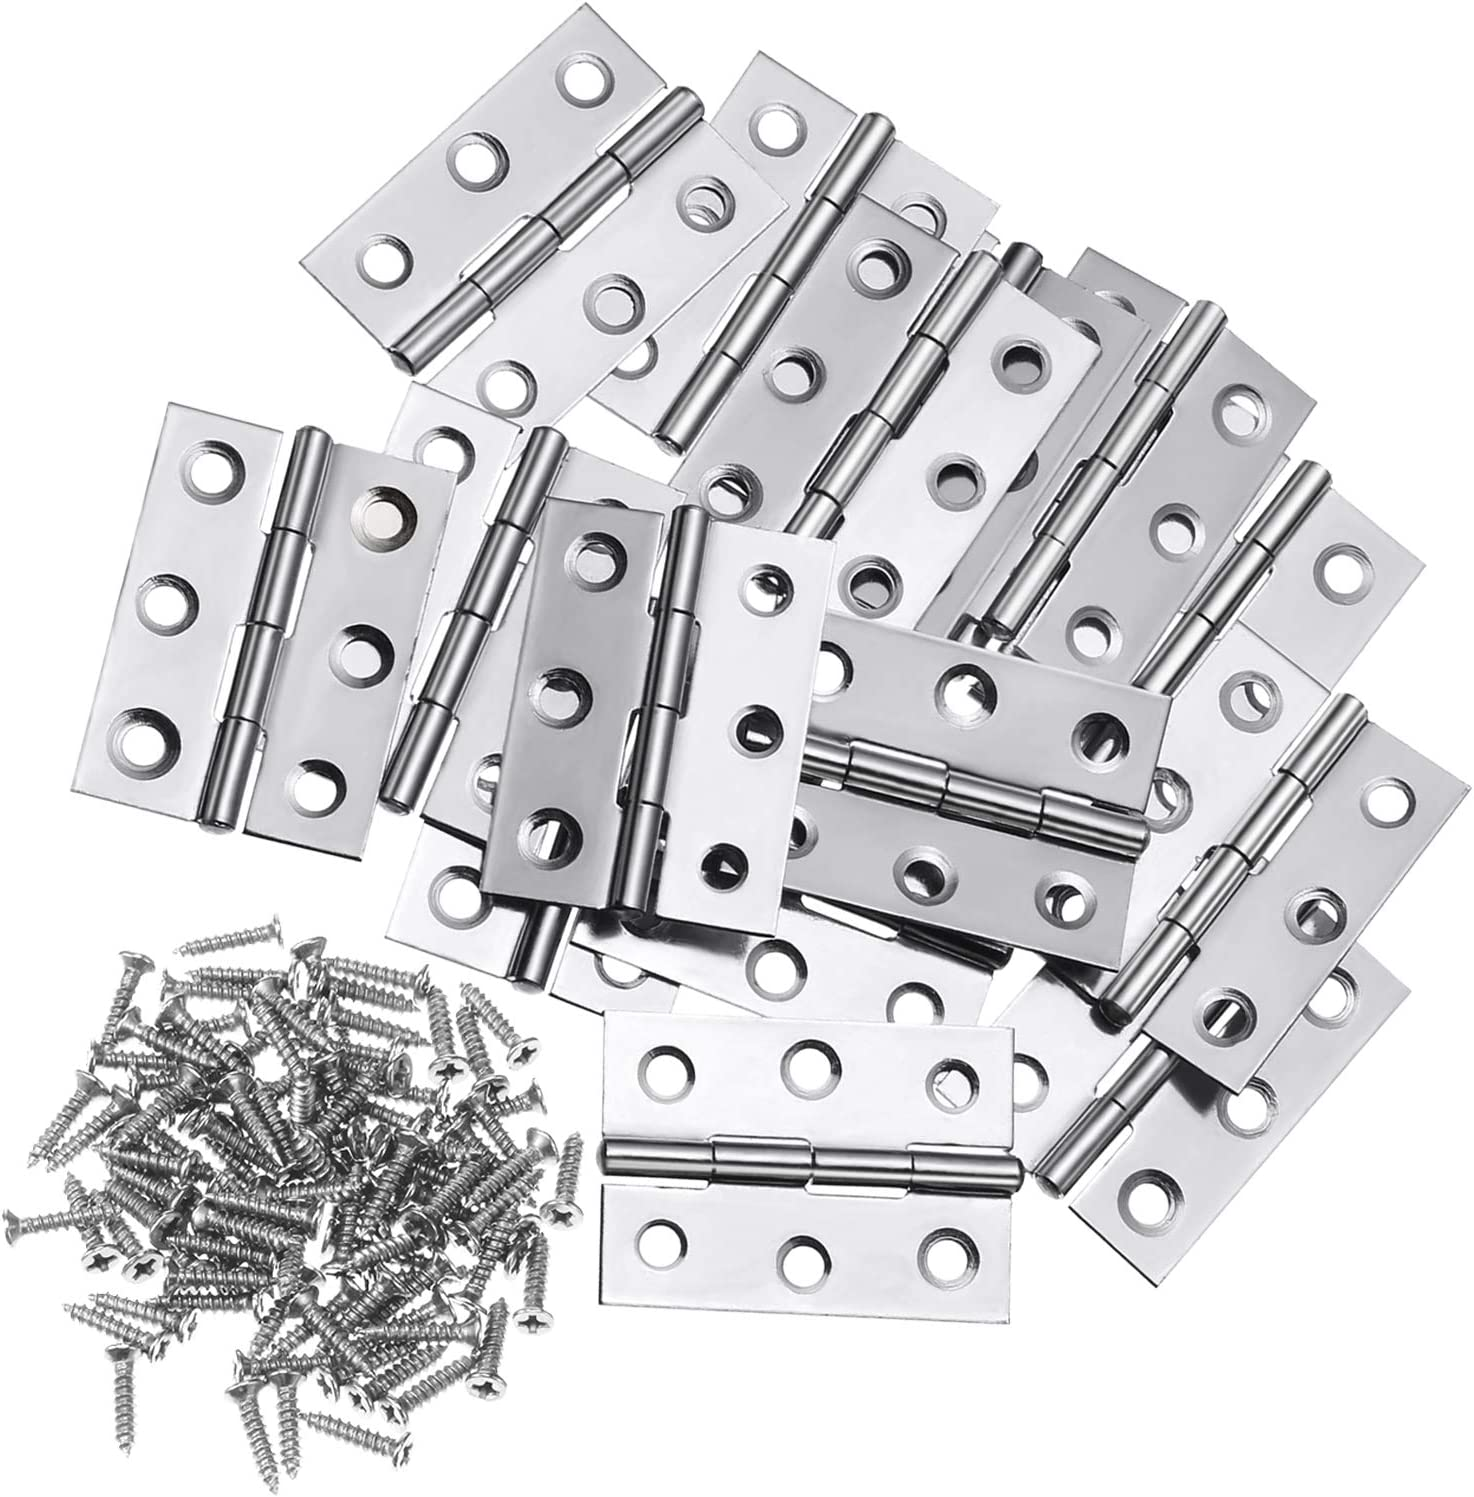 Boao 16 Pieces Stainless Steel Folding Butt Hinges Home Furniture Hardware Door Hinge with 96 Pieces Stainless Steel Screws (2 Inch, Silver)